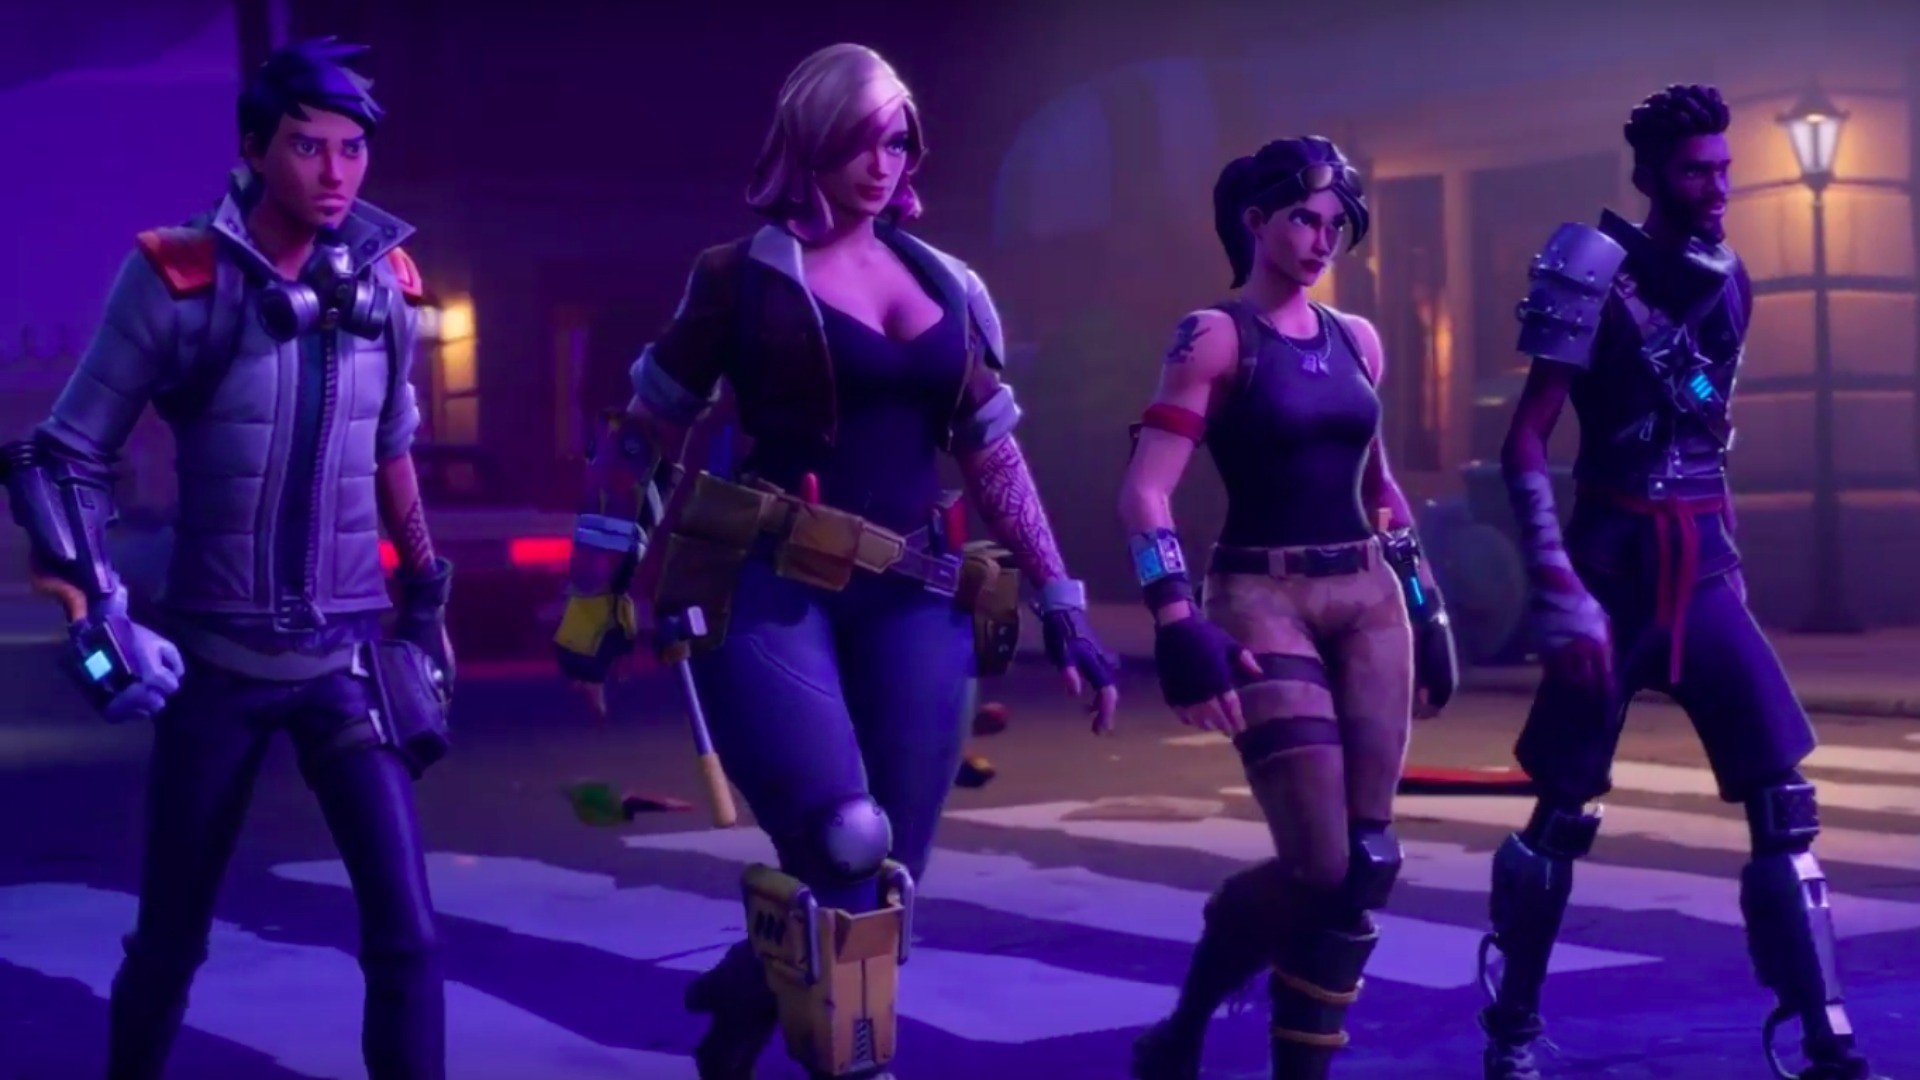 Fortnite's new limited-time mode quietly enters the ring screenshot